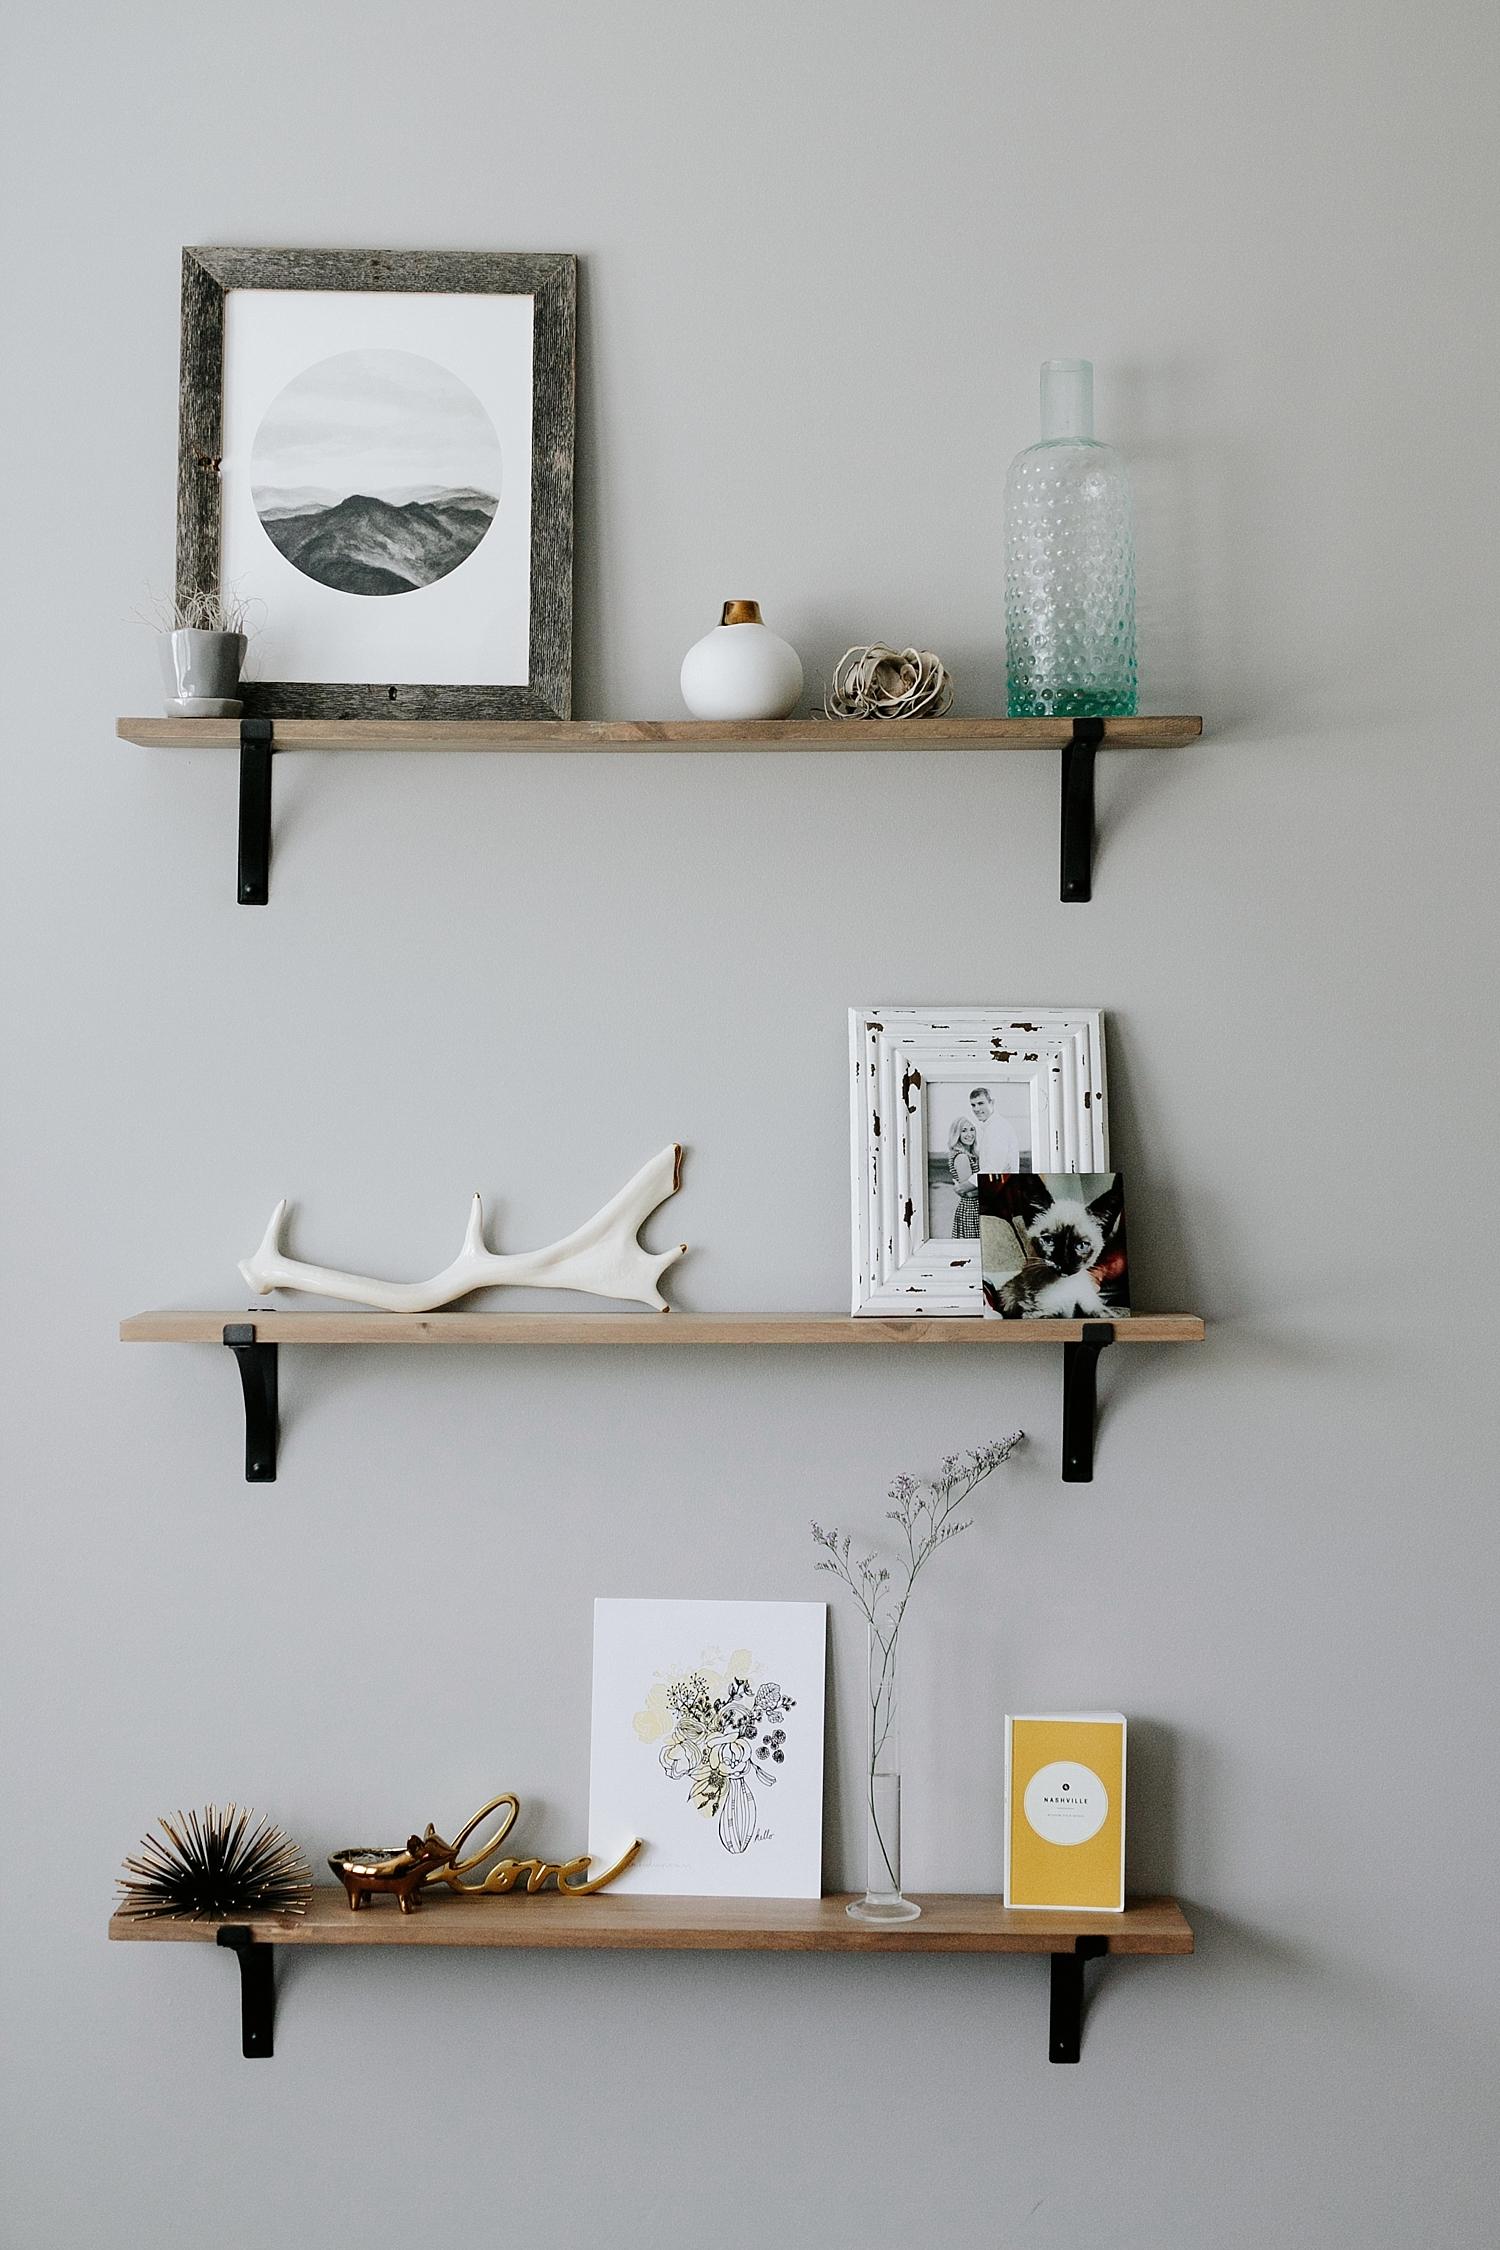 decorated shelf in home